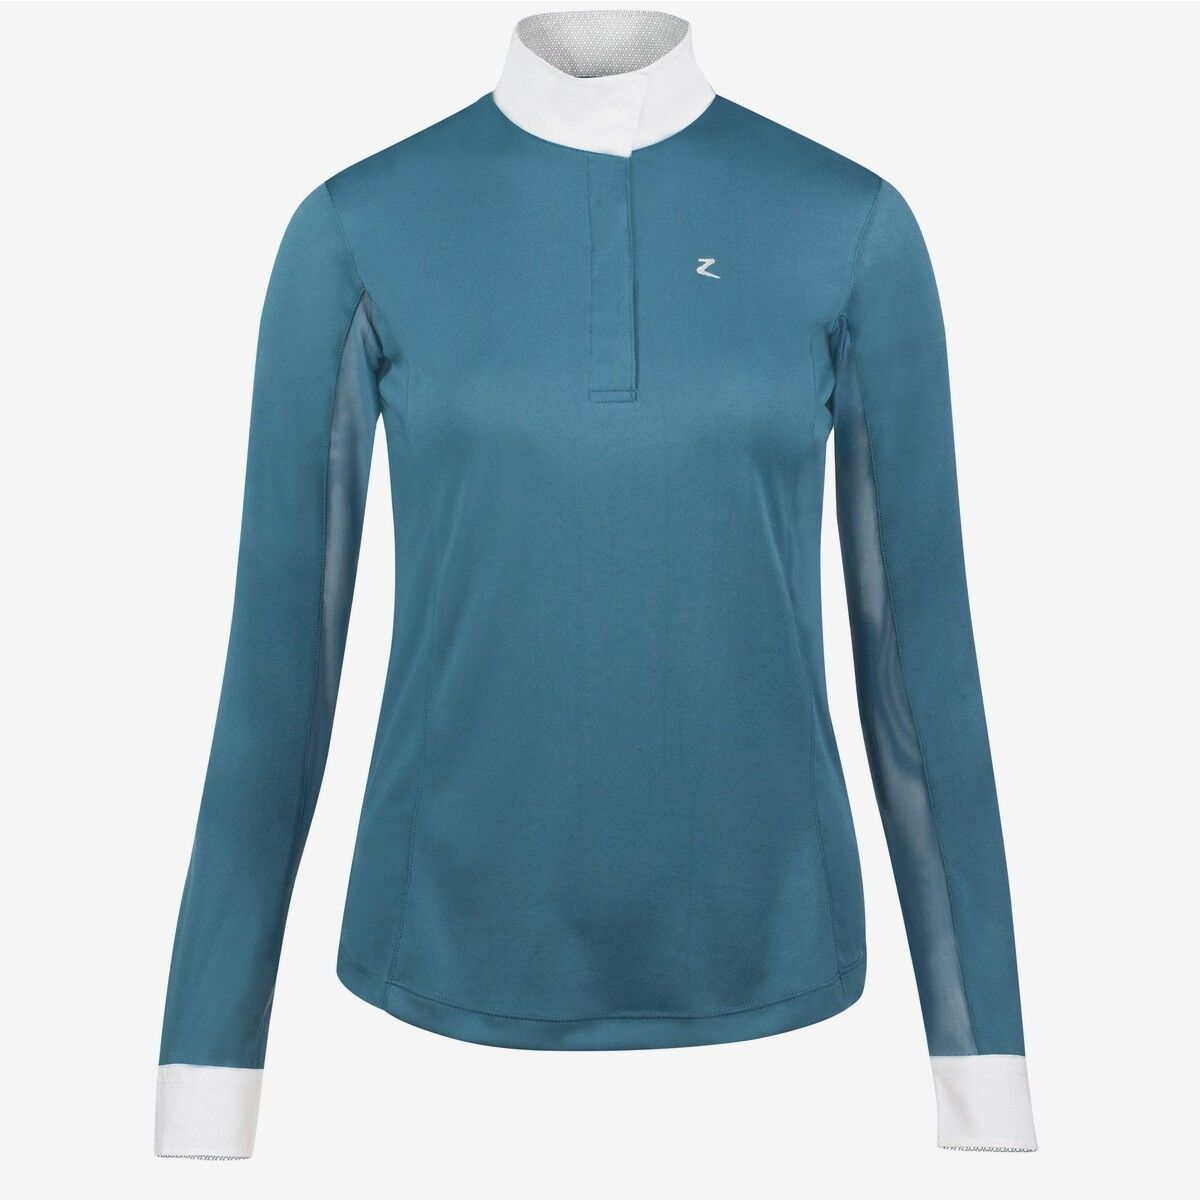 NEW HORZE BLAIRE WOMEN'S LONG SLEEVE TECHNICAL SHOW  SHIRT, TEAL, FREE SHIP   up to 42% off